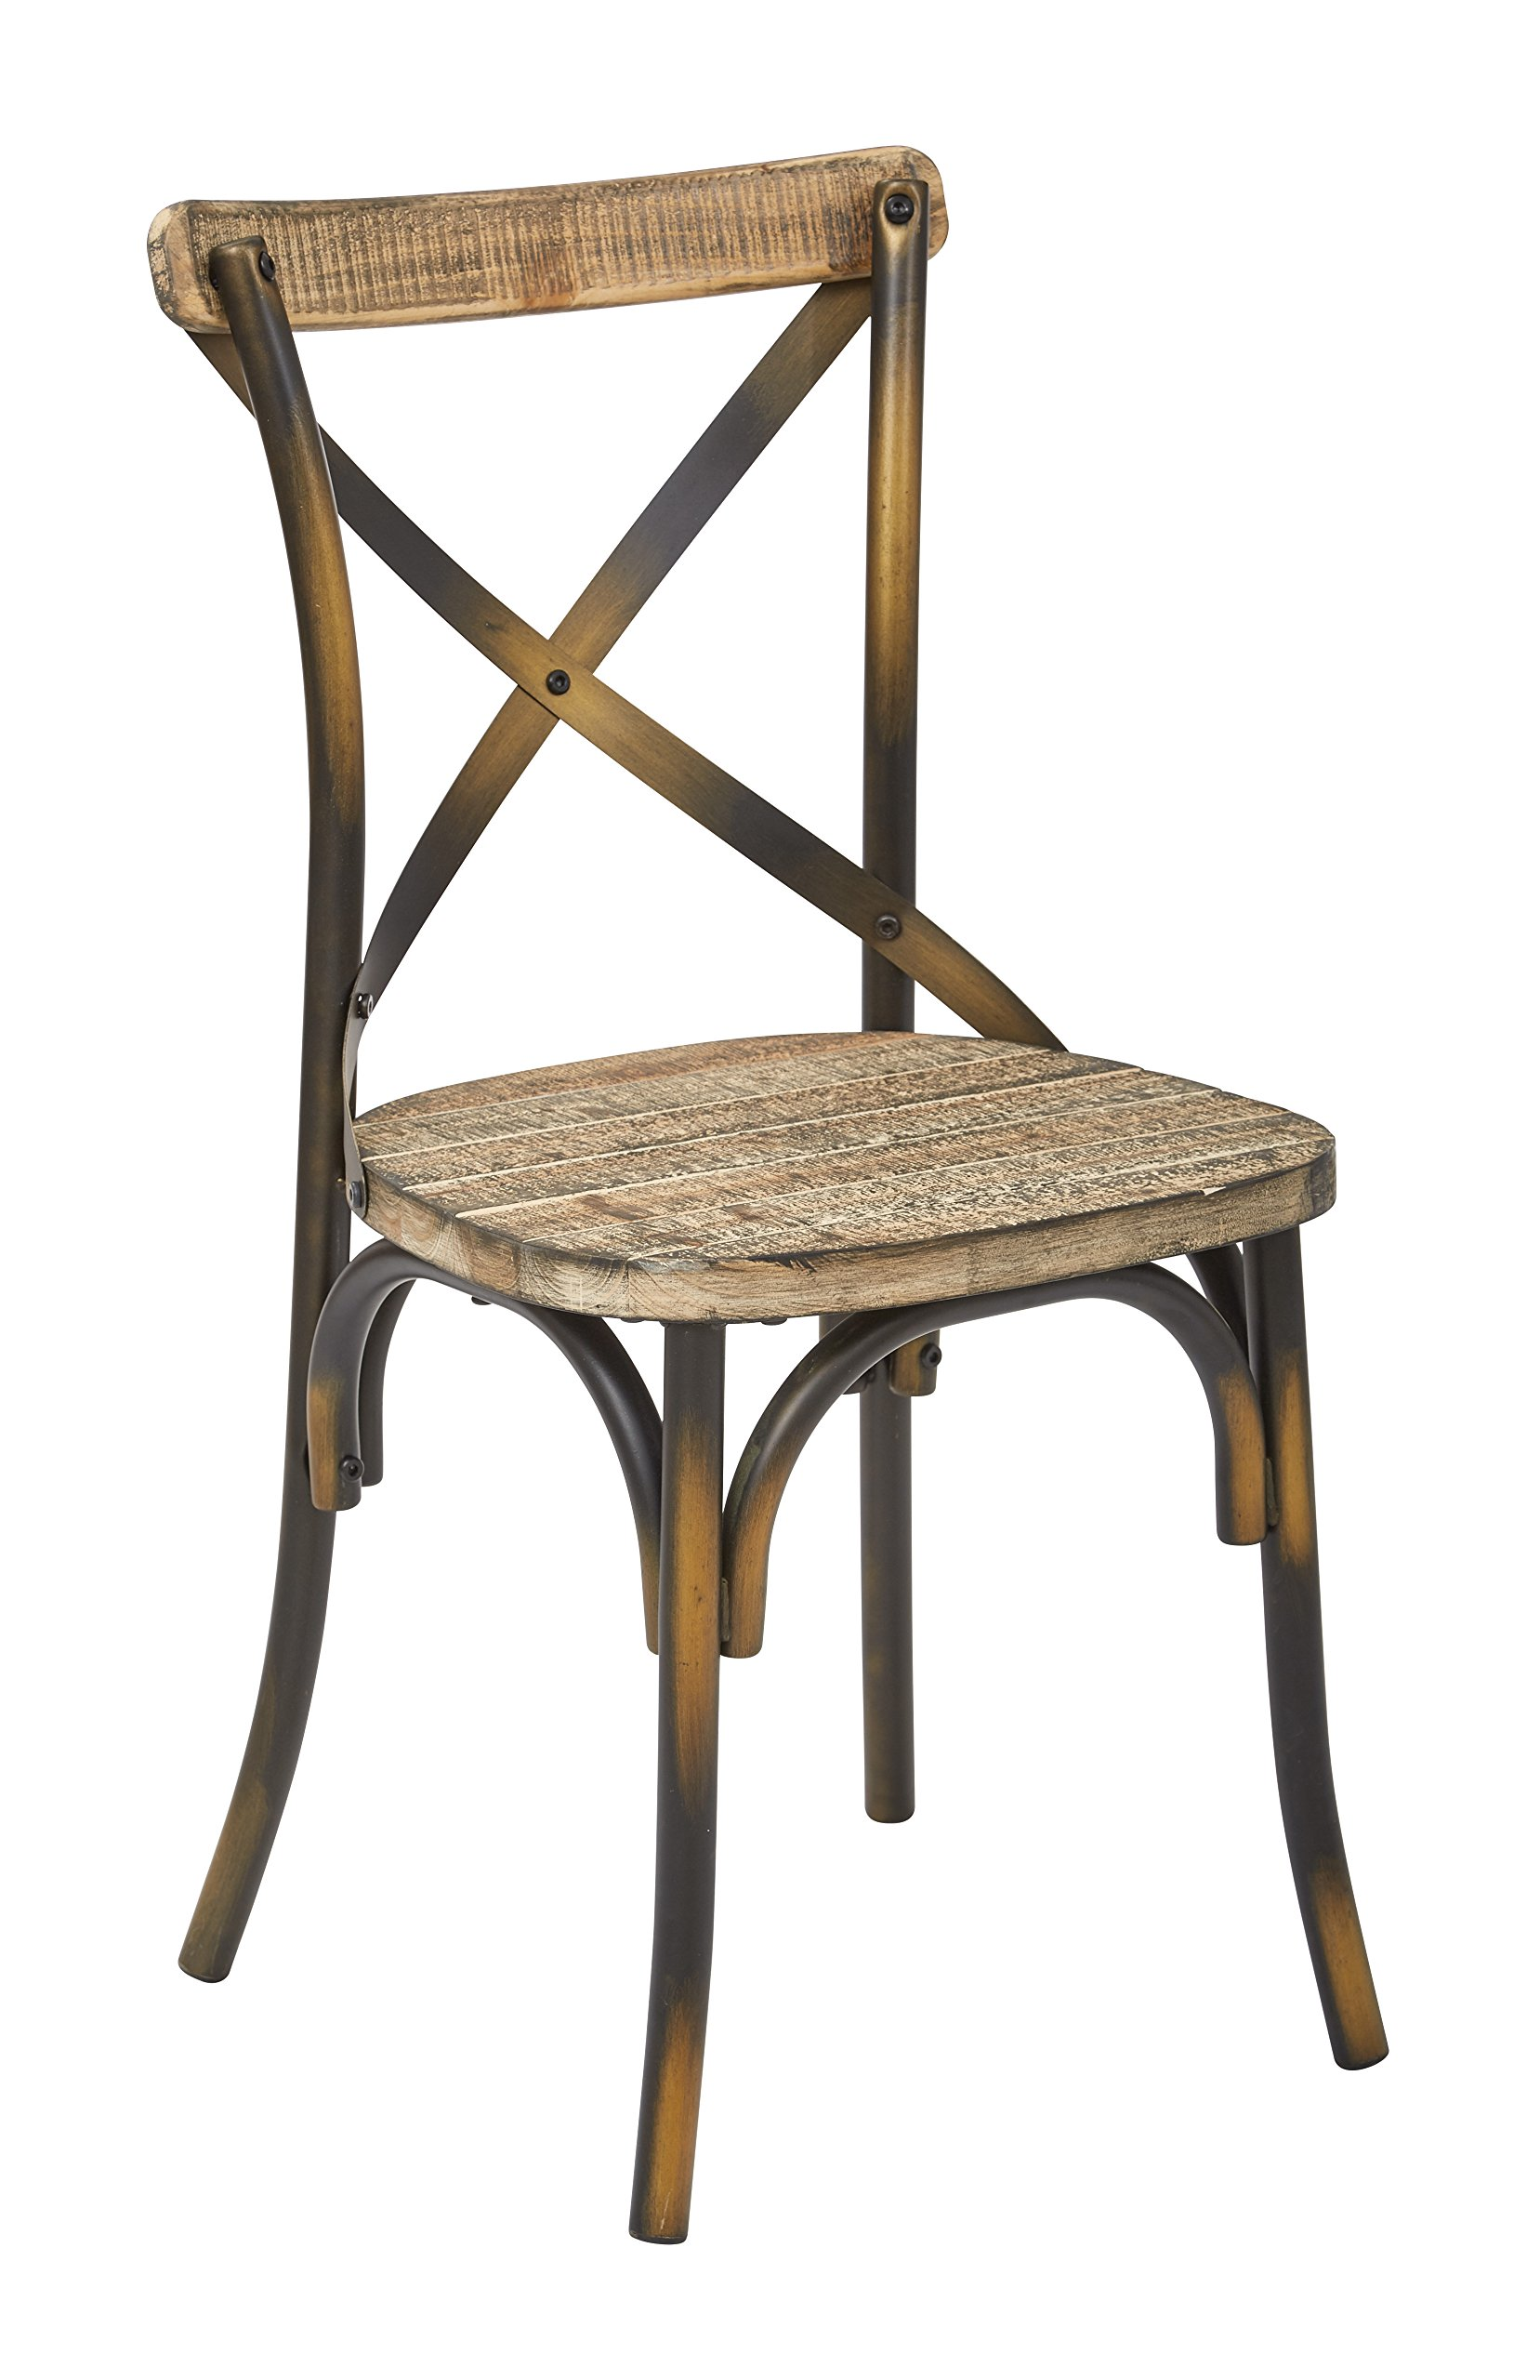 Work Smart/OSP Designs SMR424AC-C314-osp Somerset X-Back Metal Chair with Hardwood Seat Finish, Antique Copper/Vintage Walnut